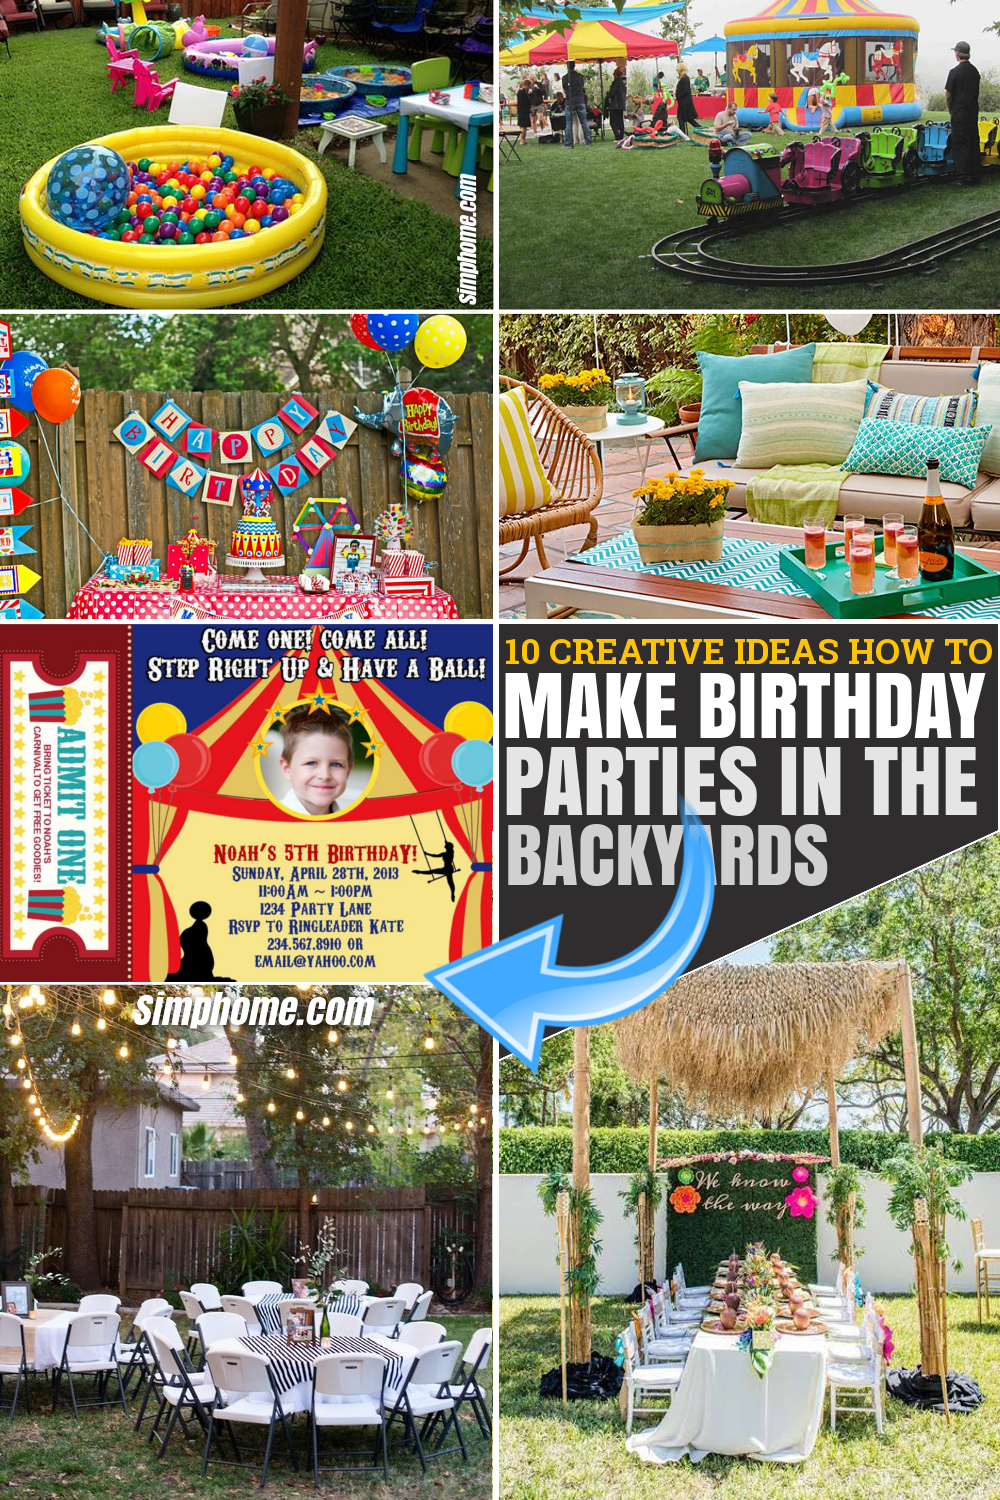 10 Ideas to Make Birthday Party in The Backyard via SIMPHOME.COM Pinterest Featured Image